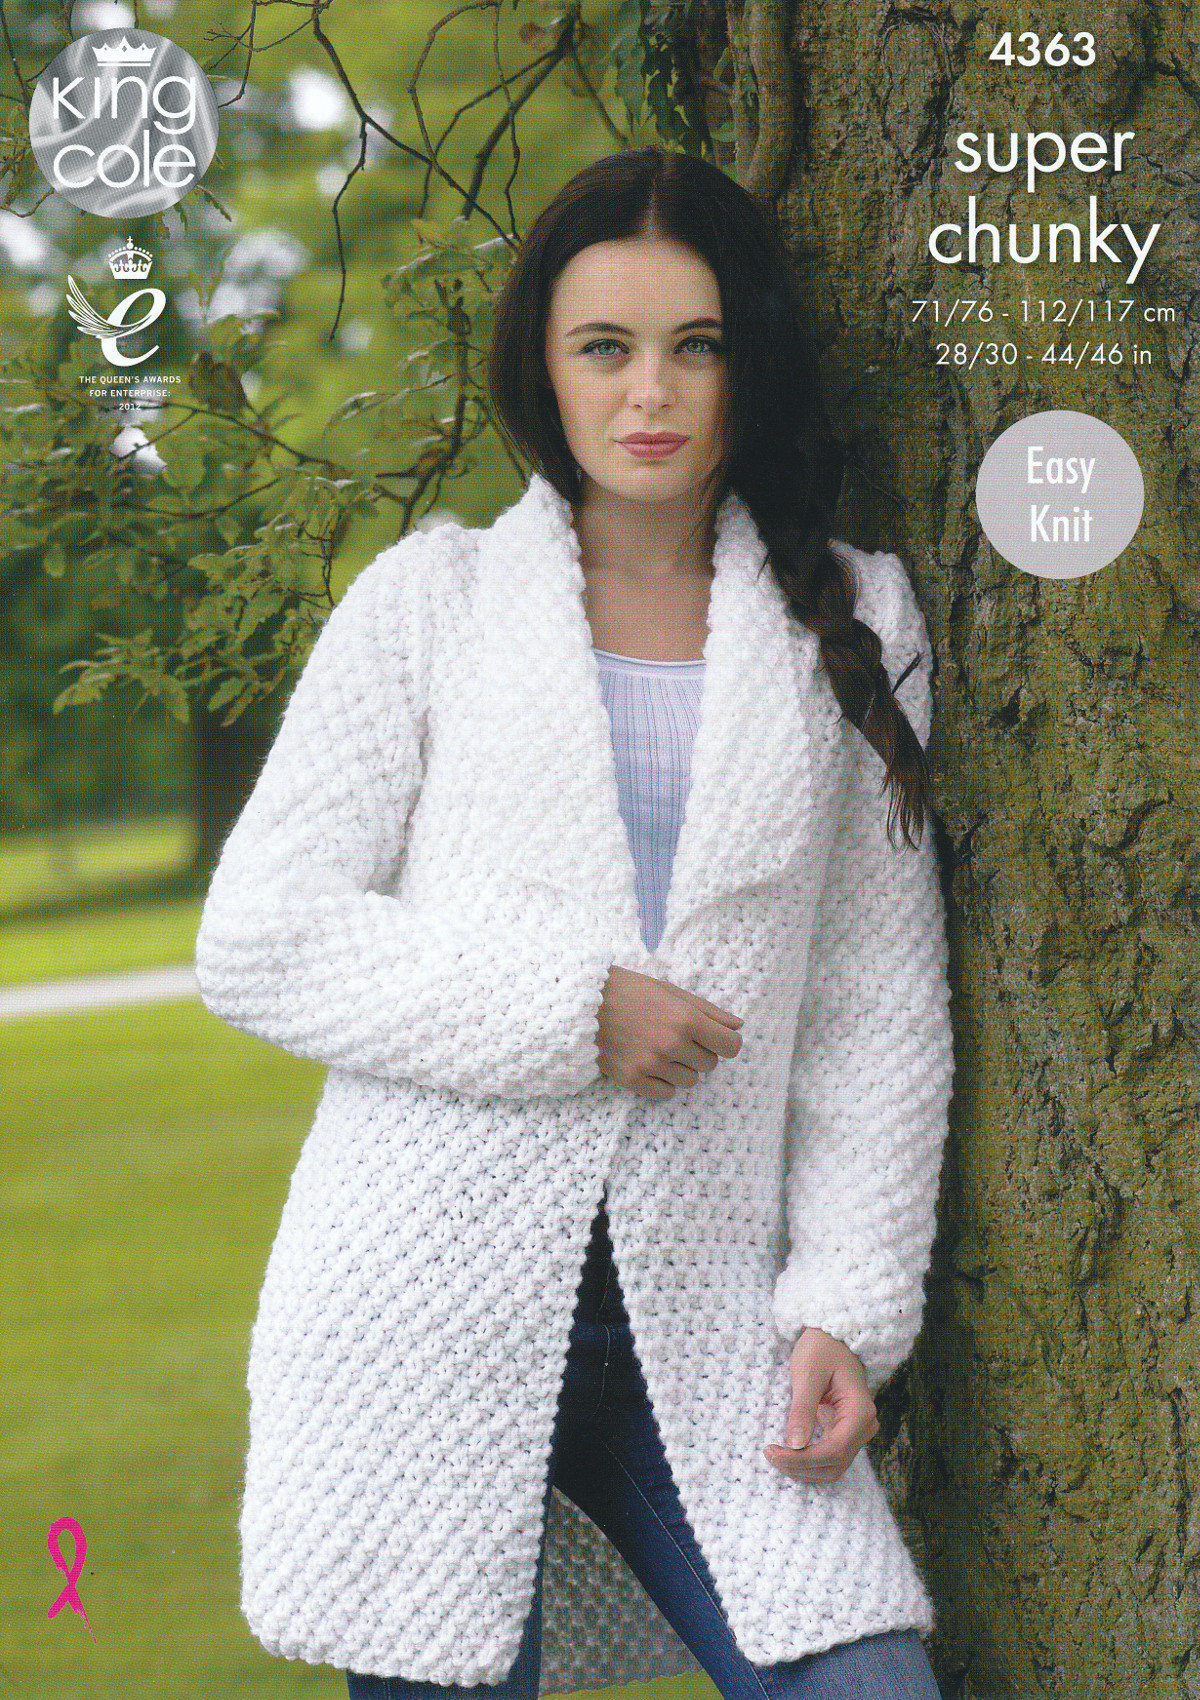 Knitting Patterns For Jackets Chunky : Ladies Super Chunky Knitting Pattern King Cole Easy Knit Sweater & Jacket...